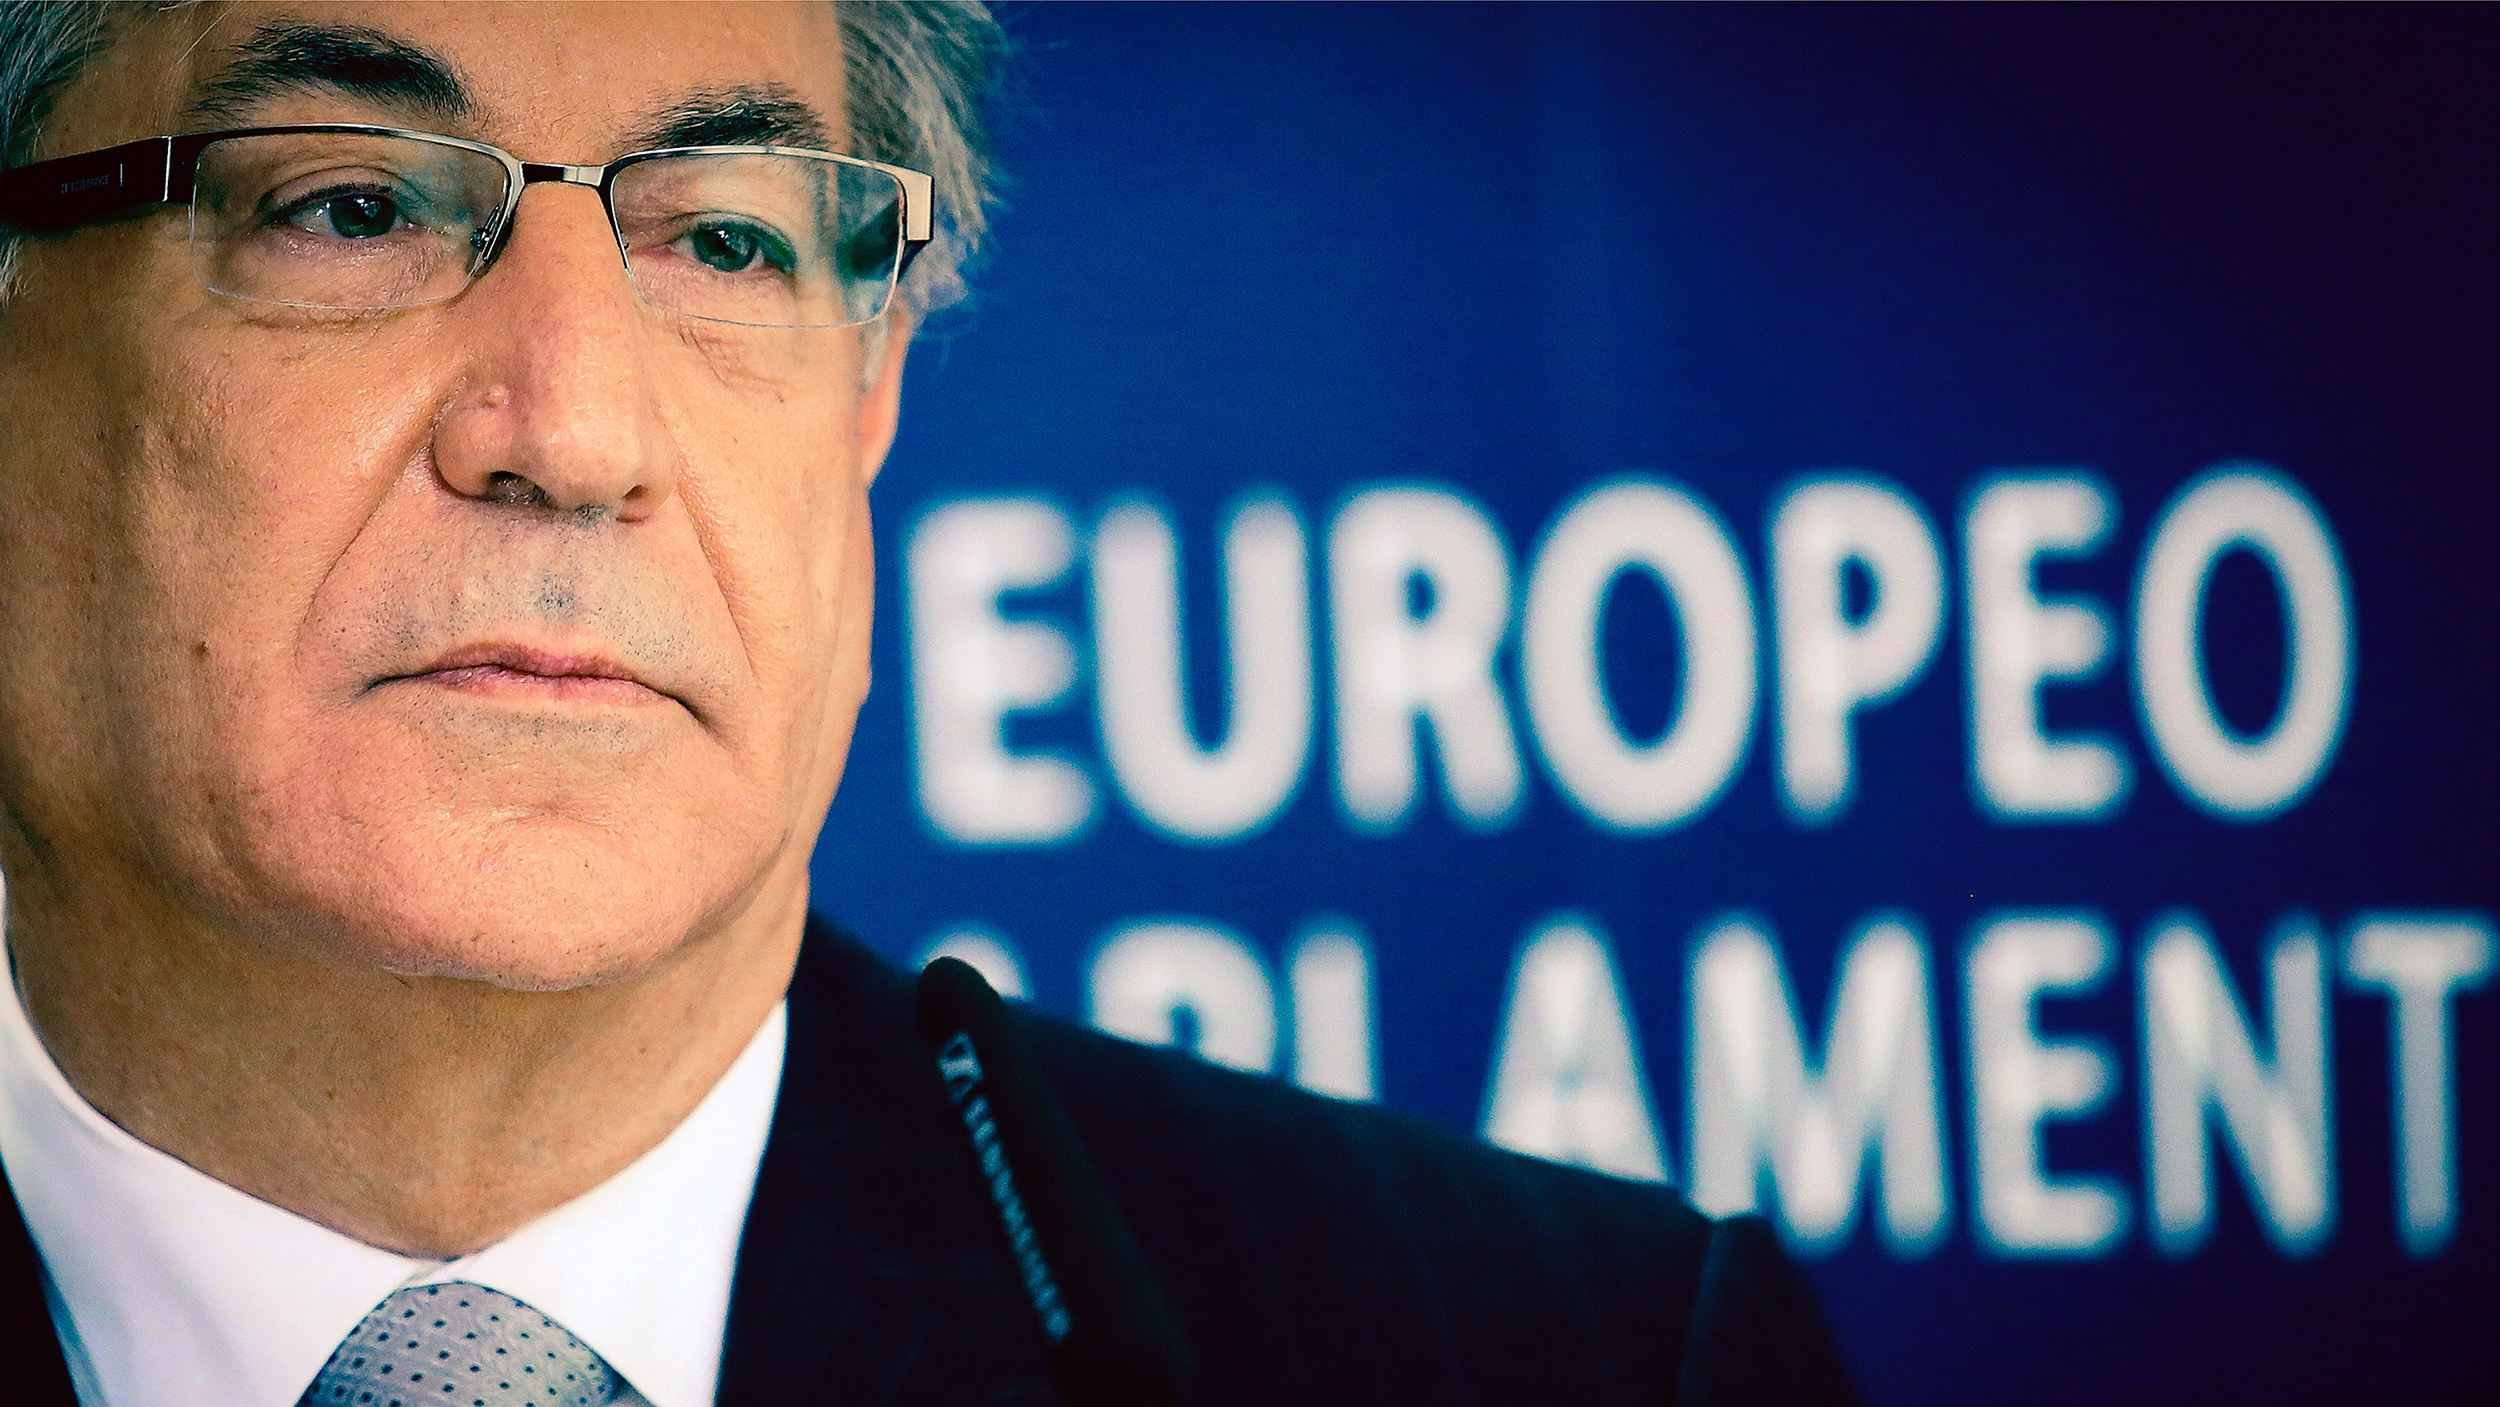 Will Karmenu Vella Show Global Leadership on Fisheries Issues?